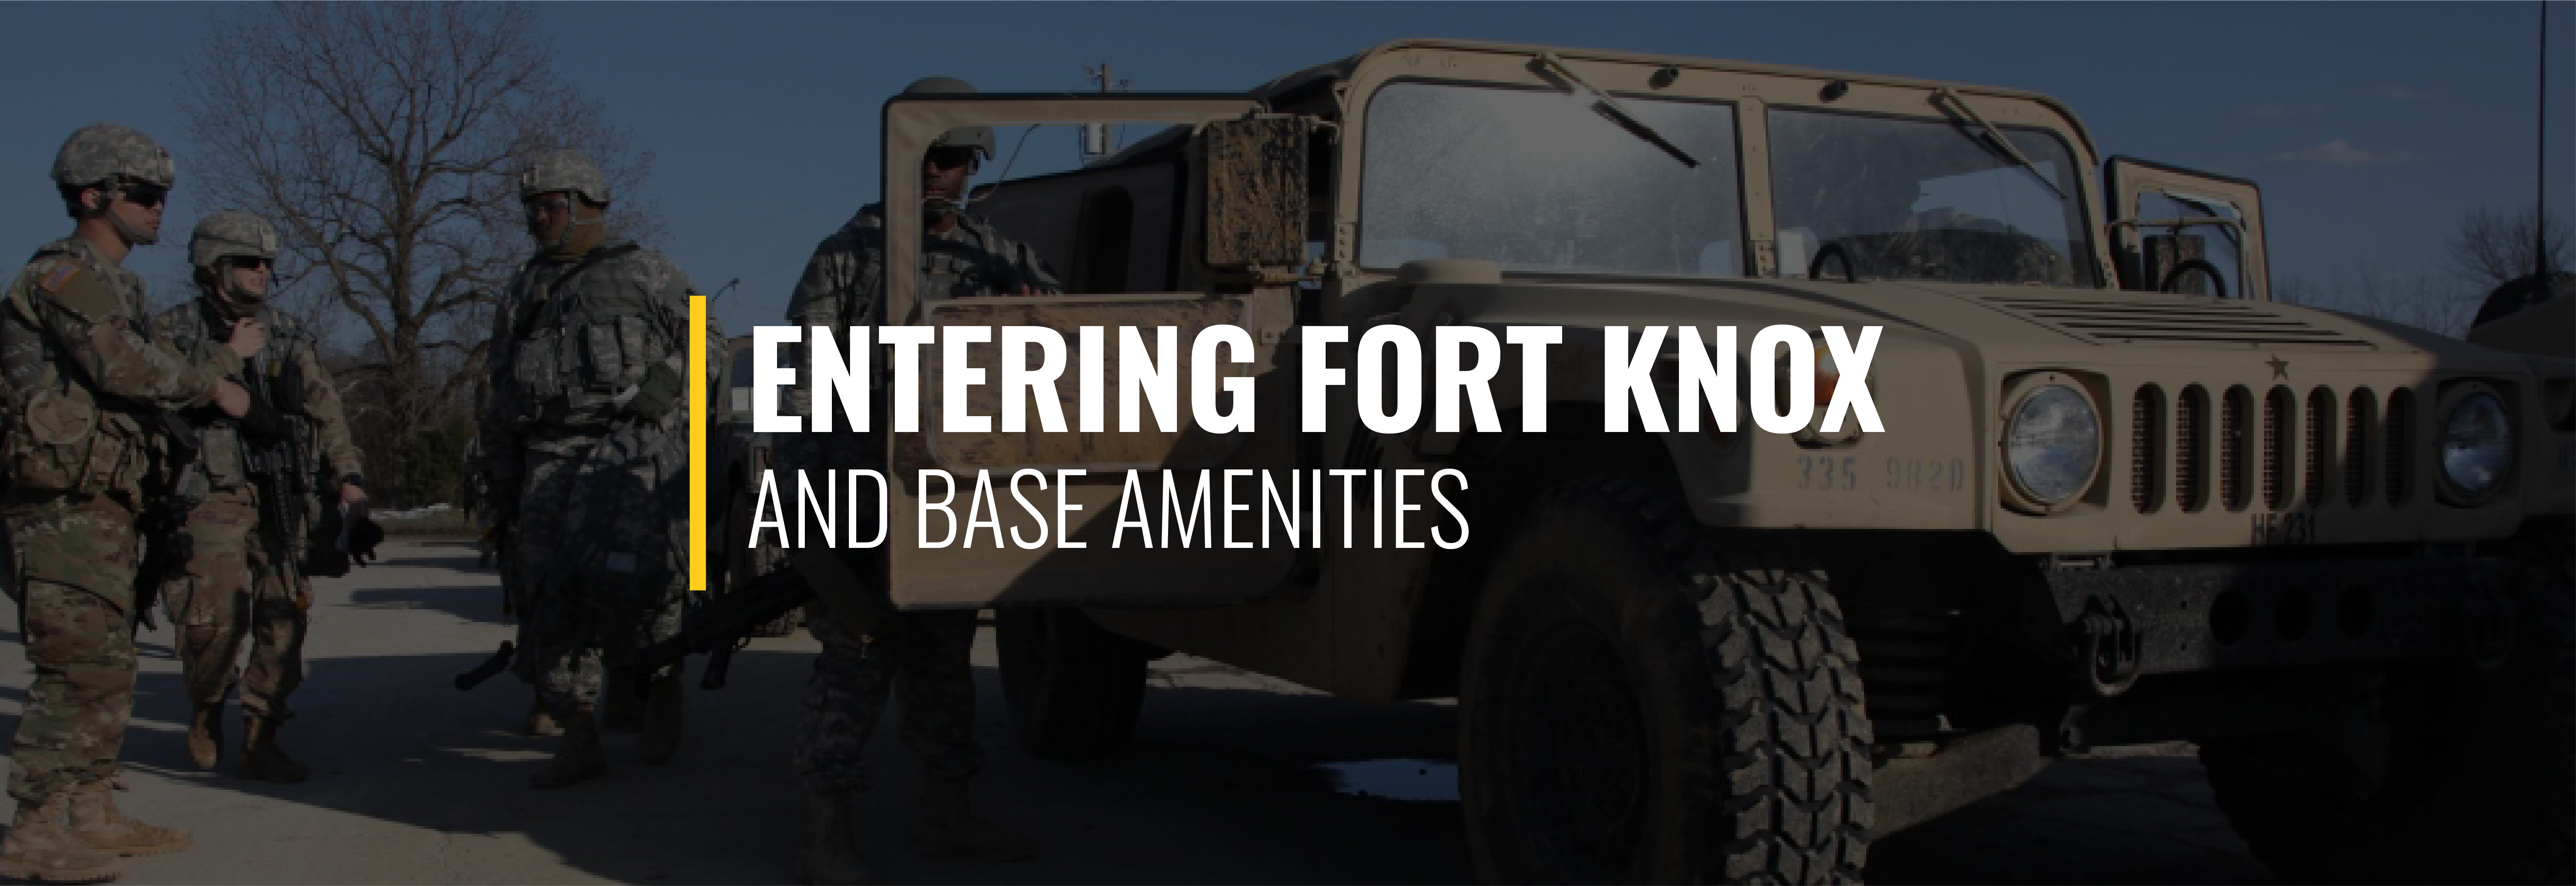 Entering Fort Knox and Base Amenities